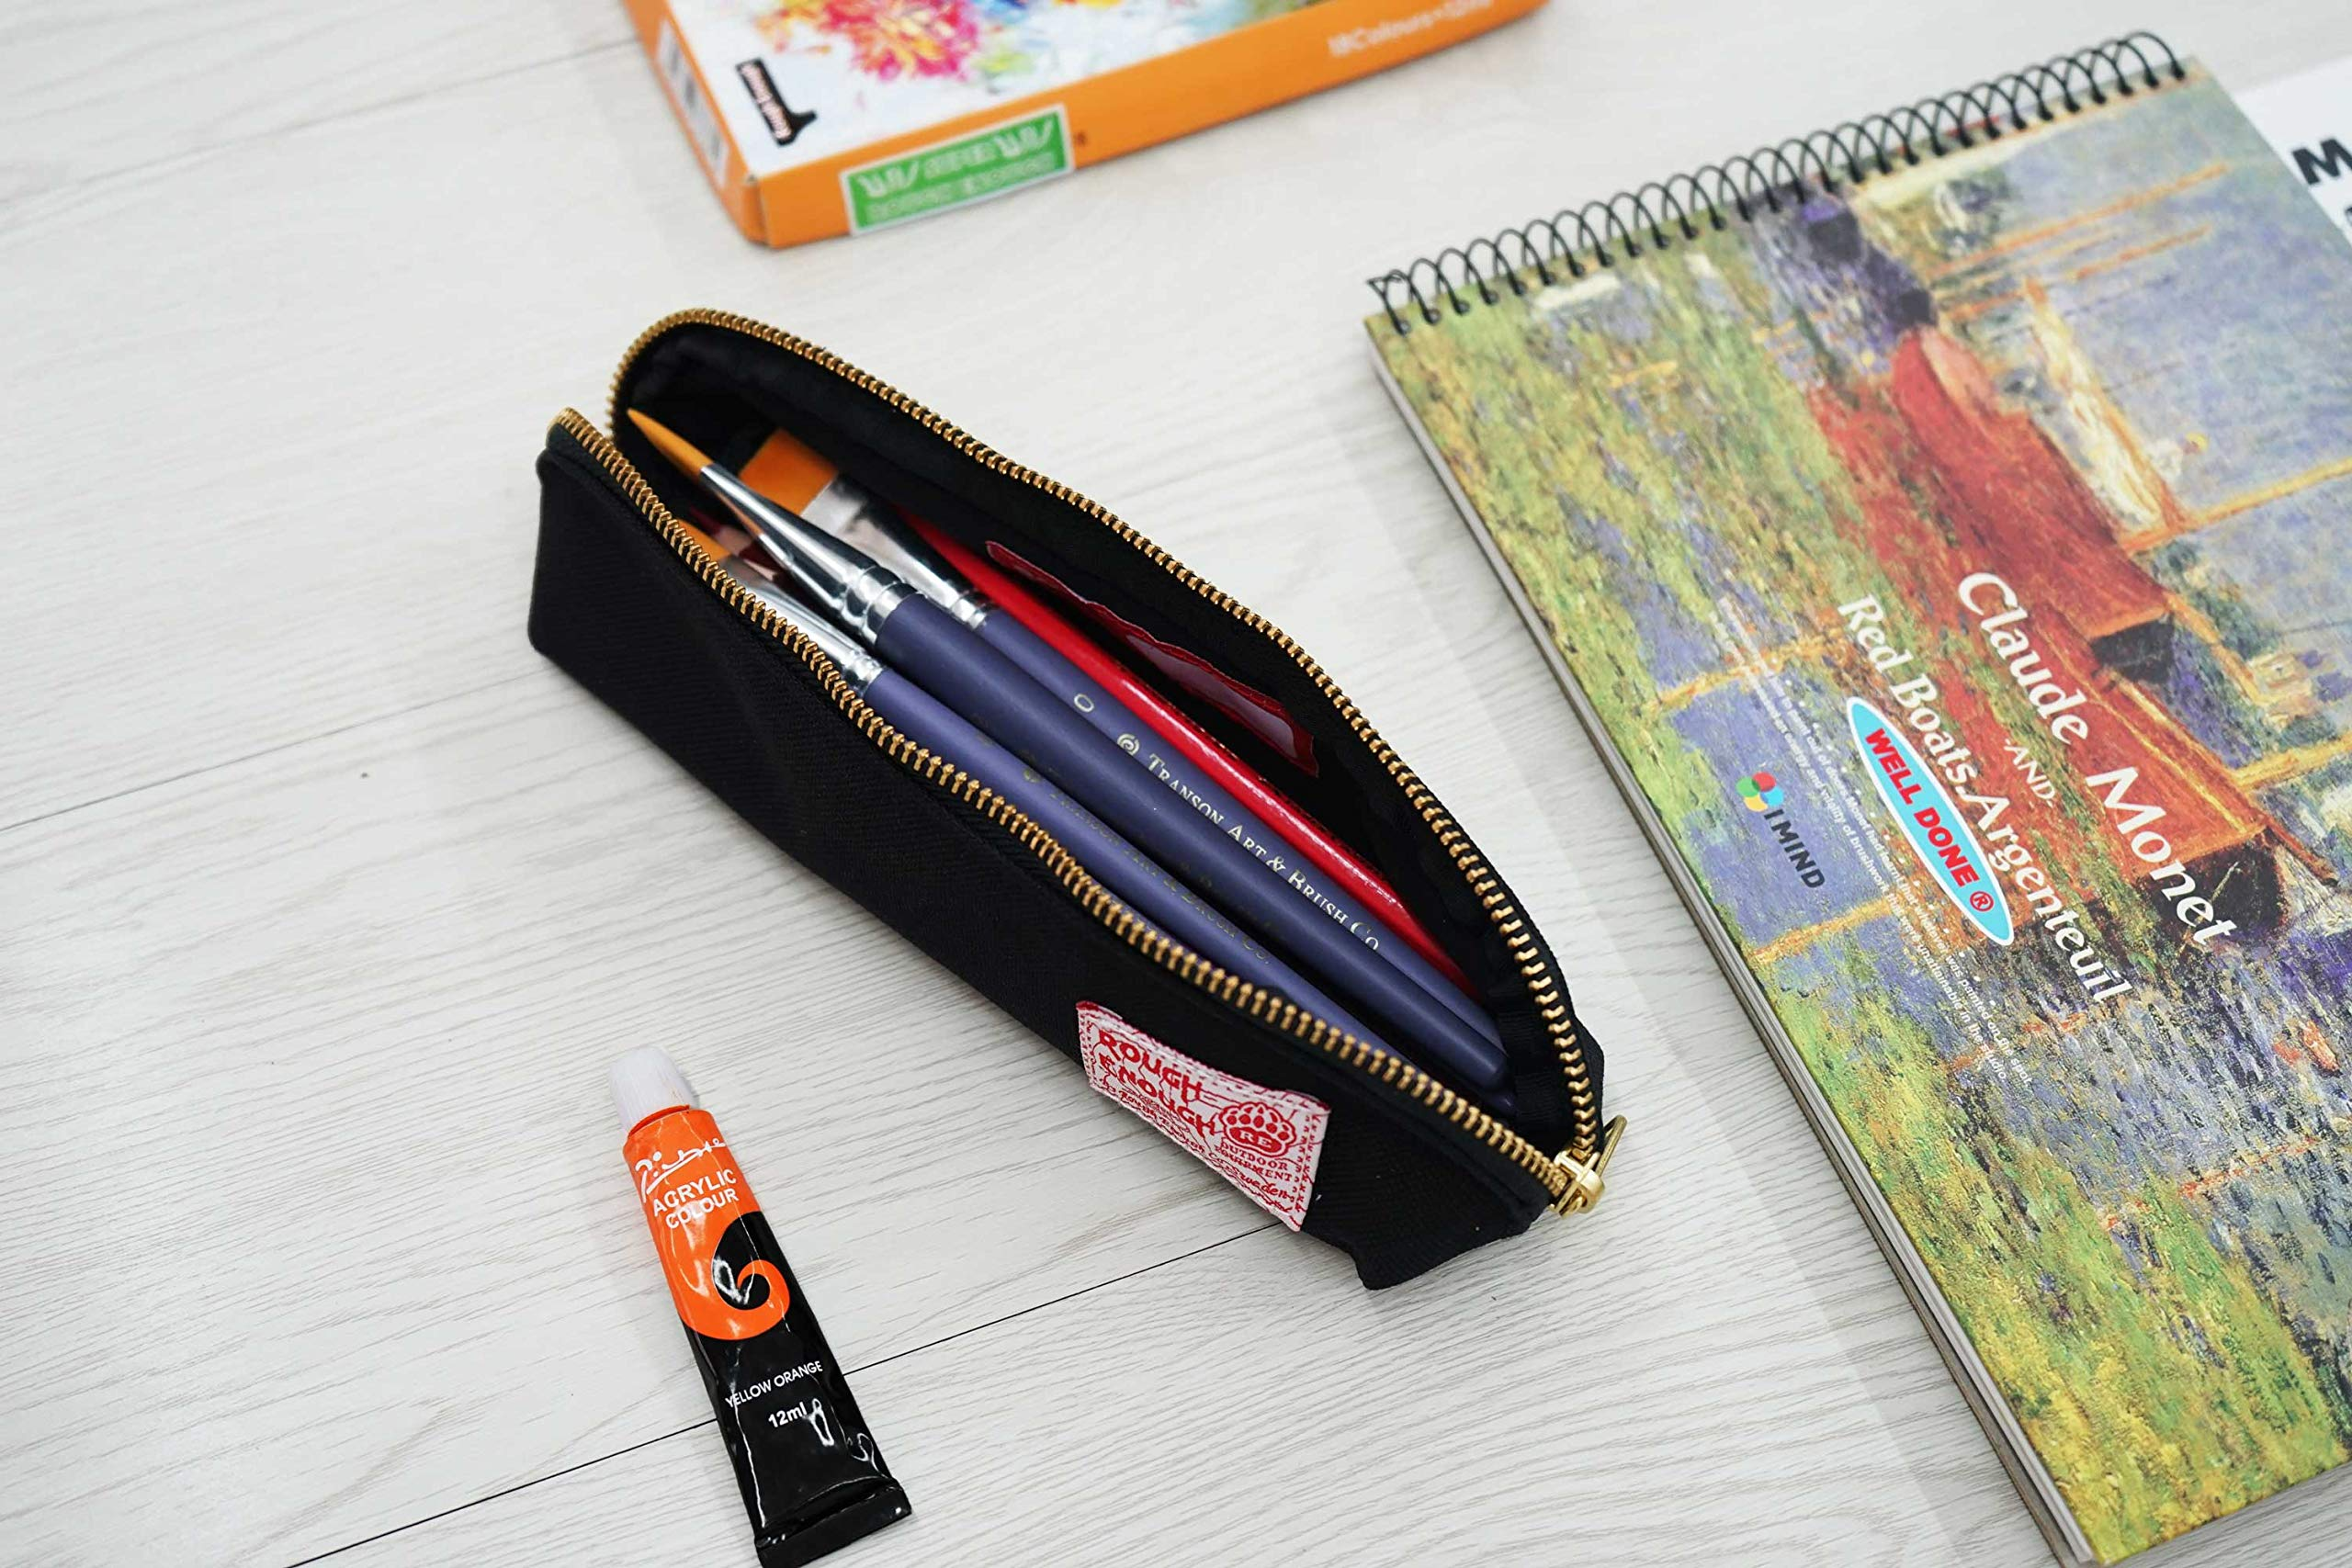 Rough Enough Multi-purpose CORDURA Polyester Long Slim Classic Portable Pencil Case Pouch Holder Organizer with YKK Gold Zipper for Stationary Cosmetics Accessories Kids Boys Students at Schools Black by ROUGH ENOUGH (Image #5)